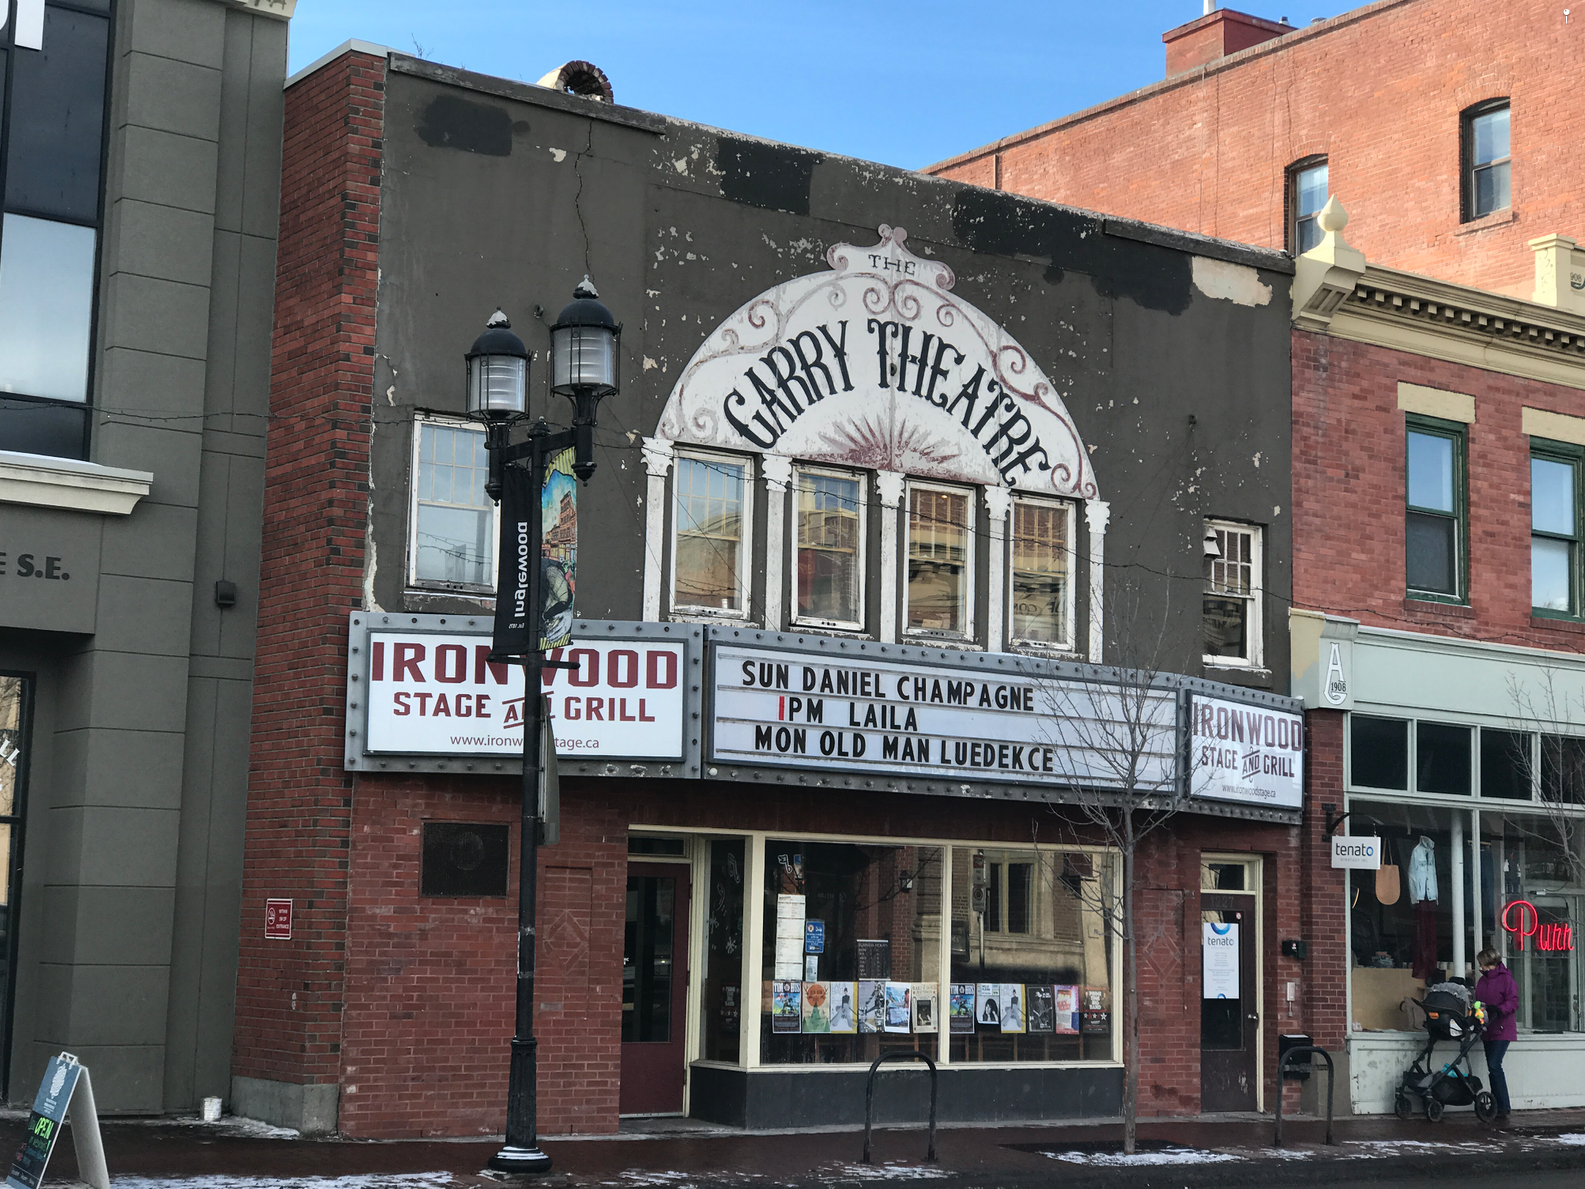 The Garry Theatre aka Ironwood Stage & Grill offers everything from blues jams to Big Band brunches.